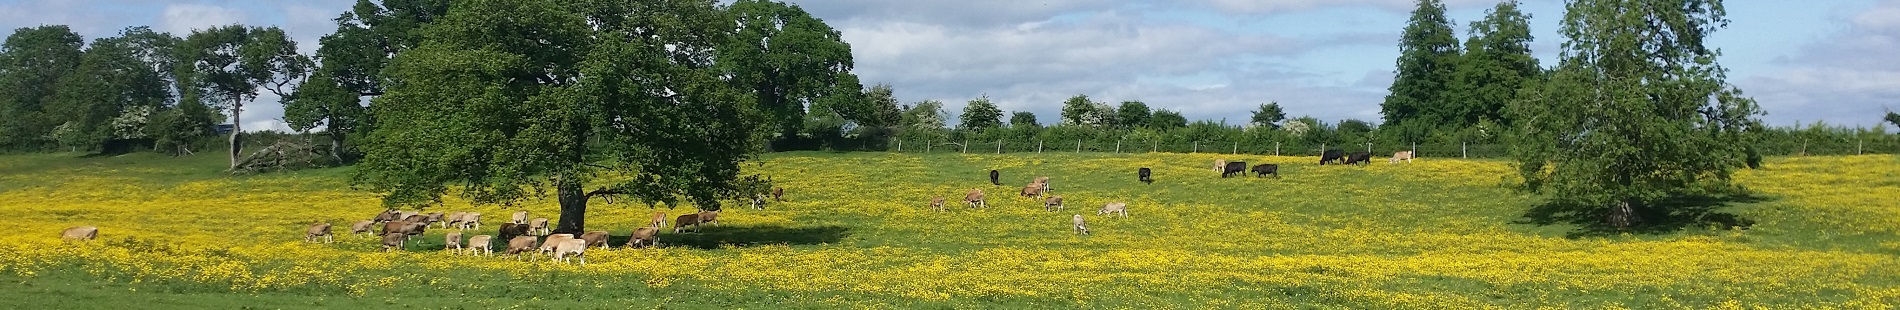 Farm animals - cows in a field of wildflowers